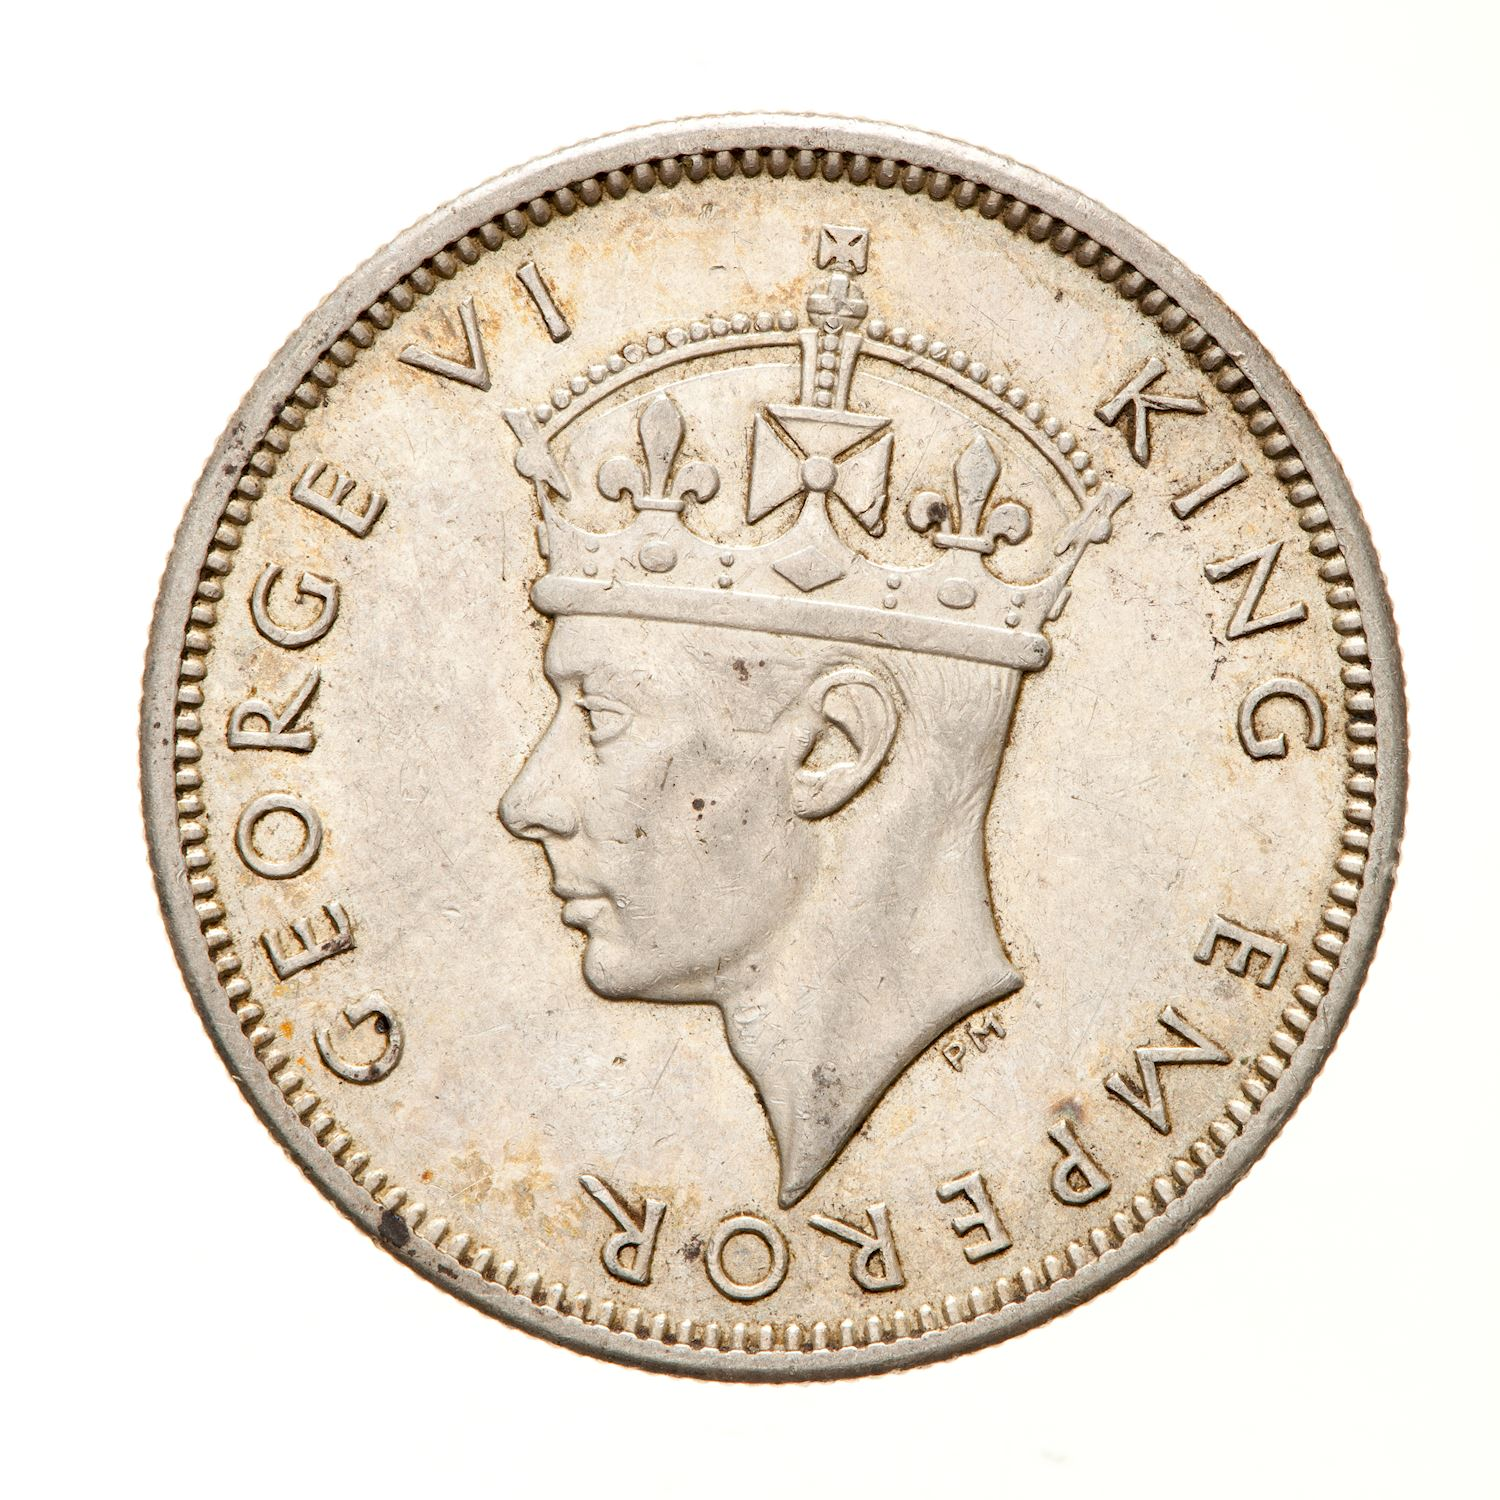 Shilling 1942: Photo Coin - 1 Shilling, Fiji, 1942